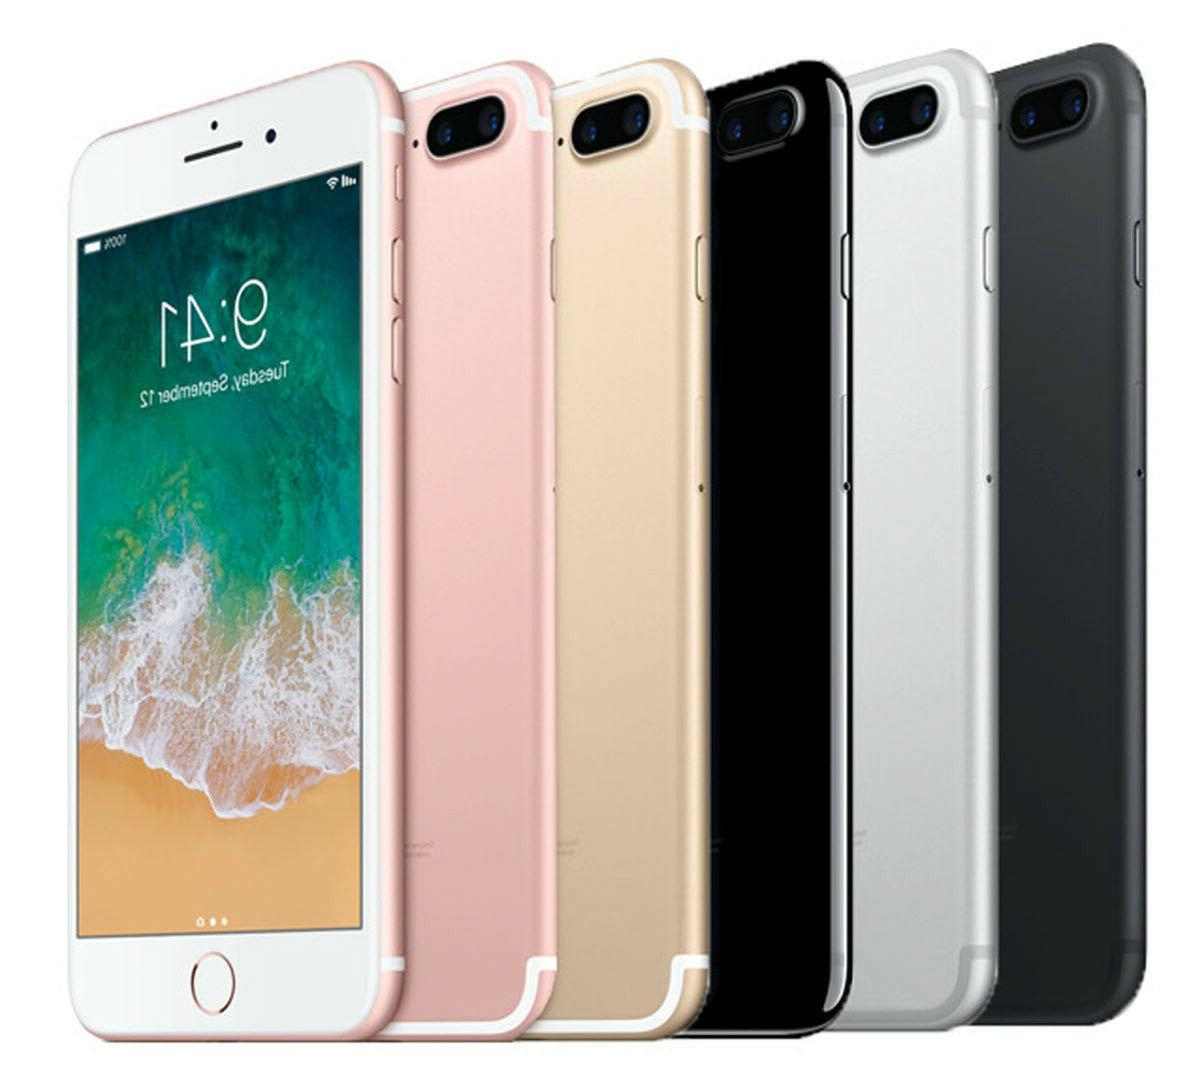 iphone 7 factory unlocked verizon t mobile